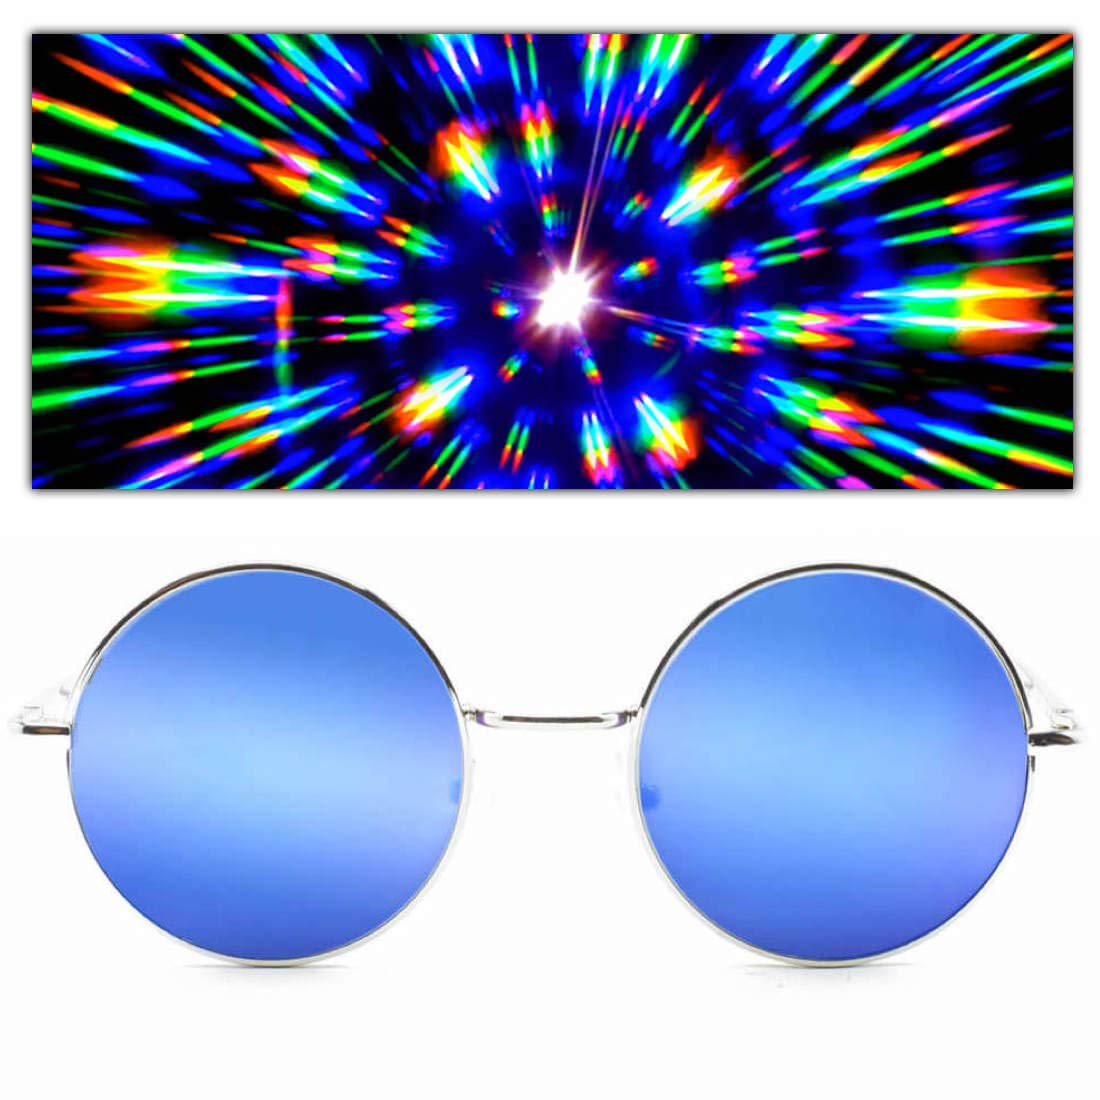 GloFX Limited Edition Specialty Diffraction Glasses – Rave Eyes Party Club 3D Trippy